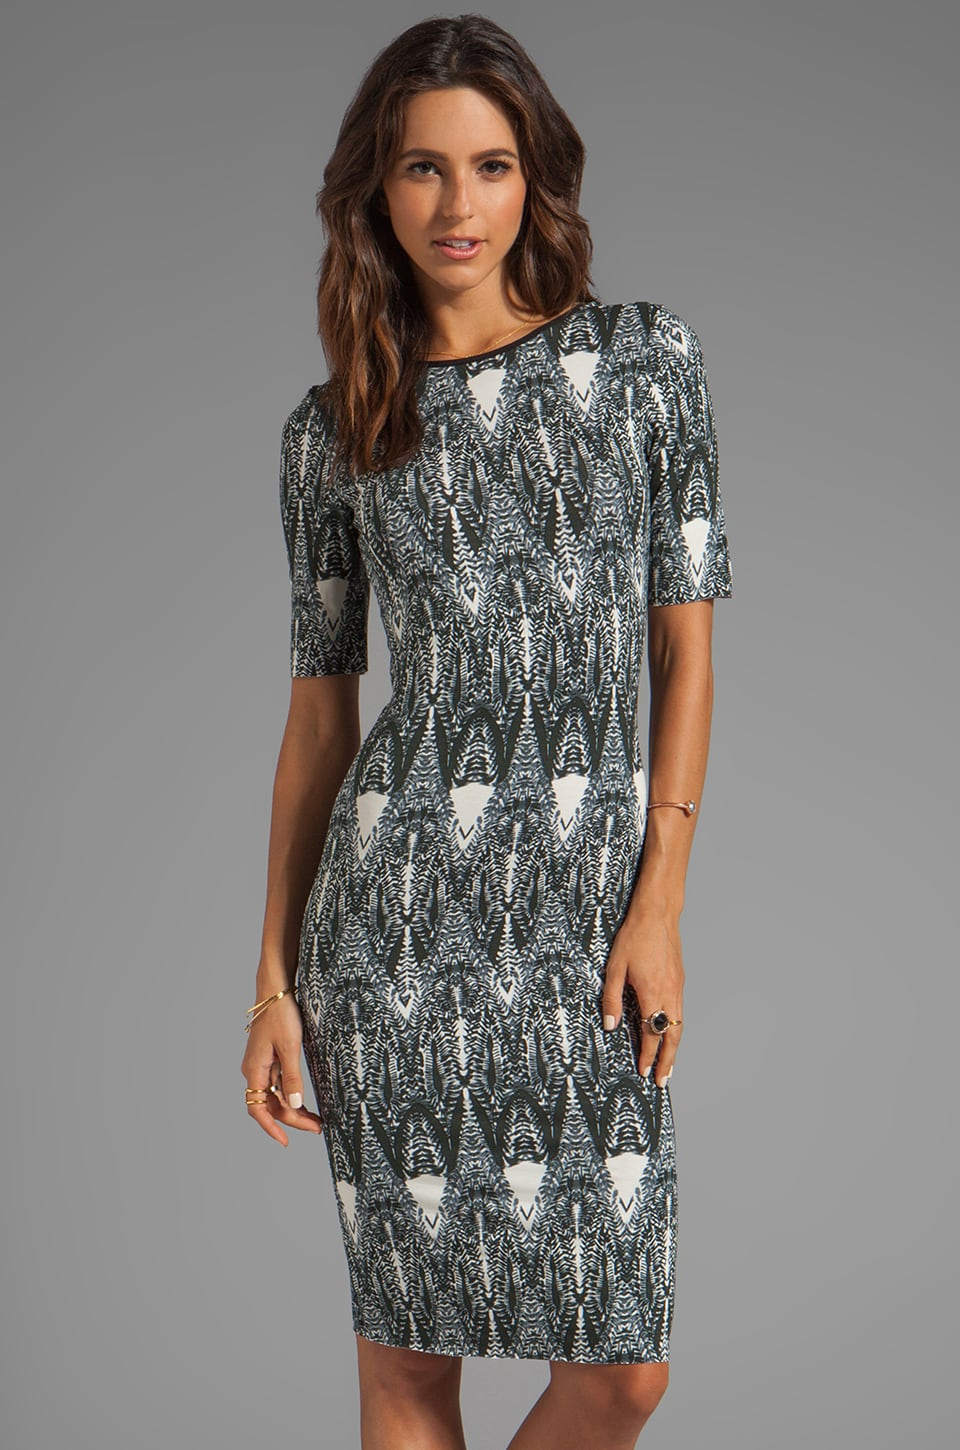 SAM&LAVI Amari Dress in Jungelina Print